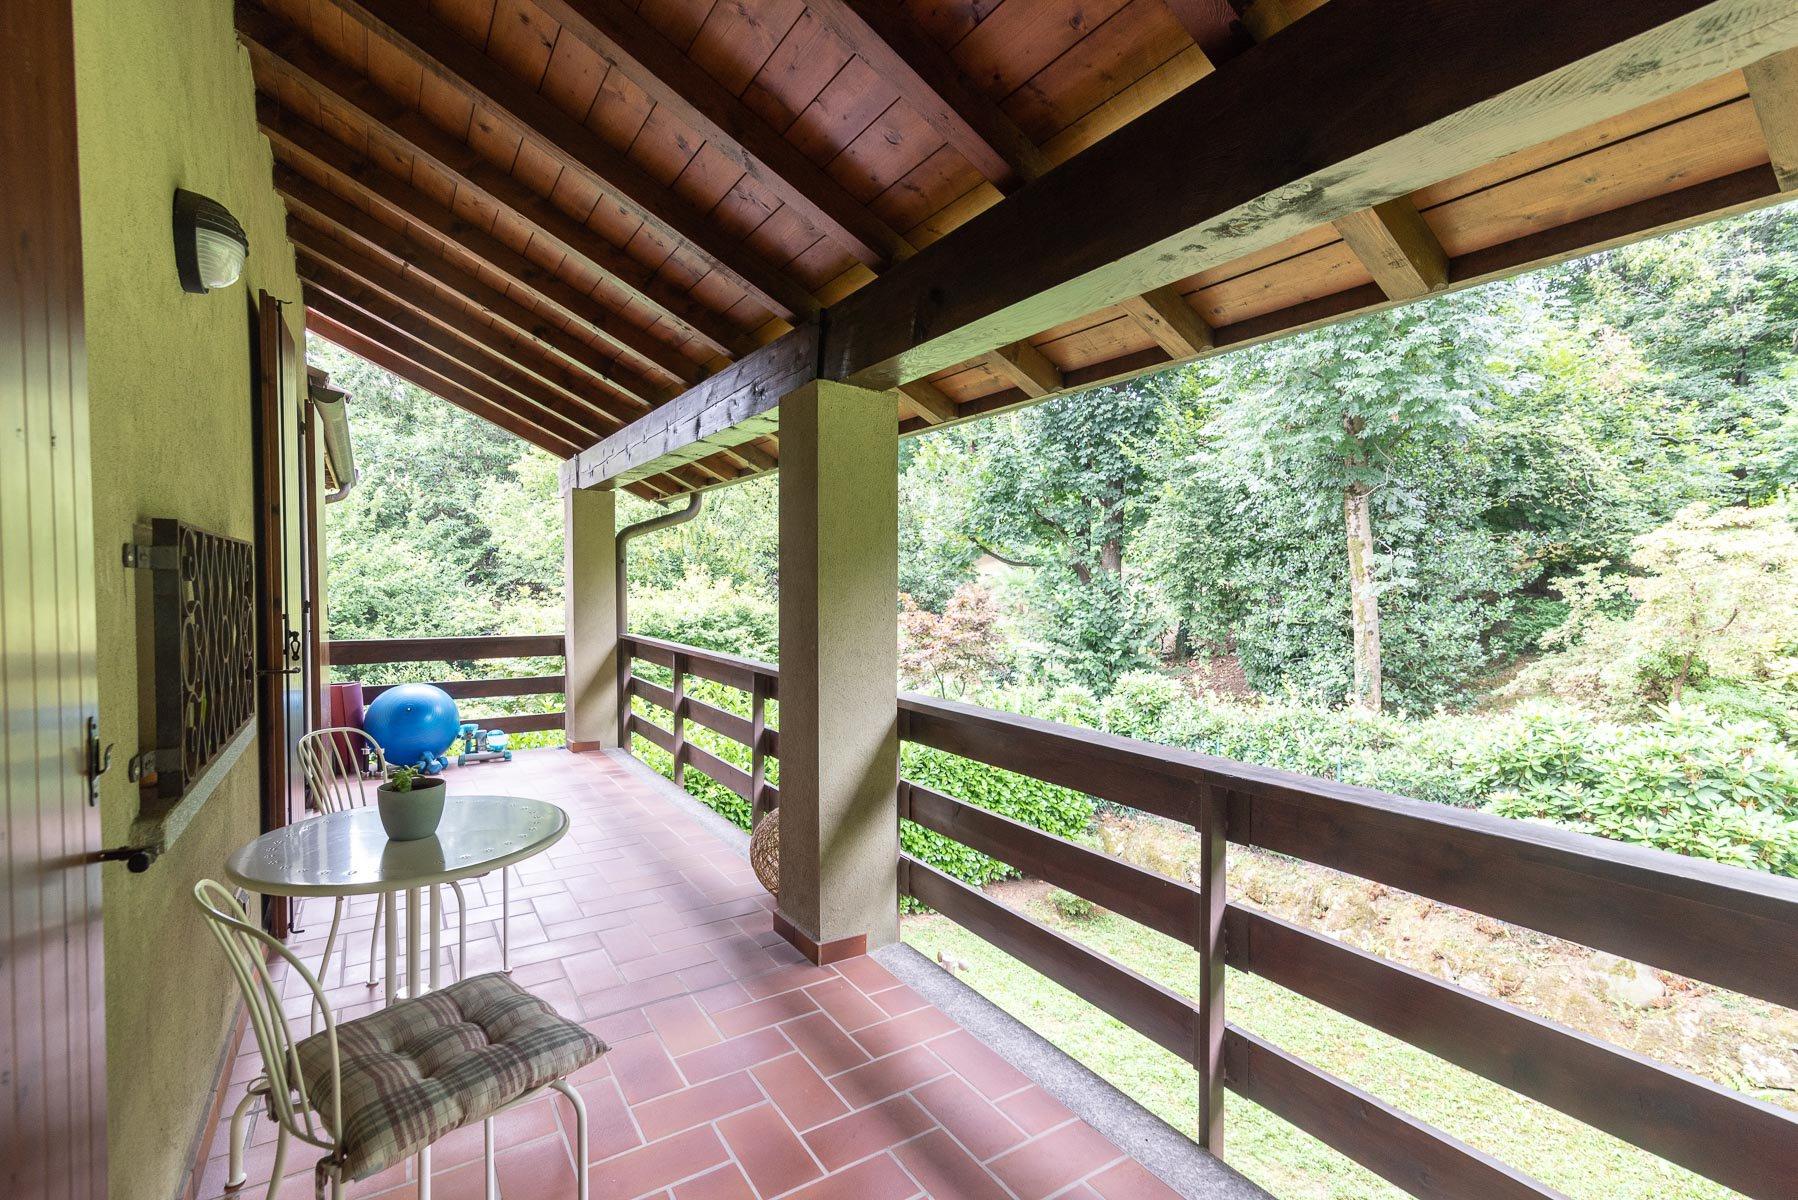 Renovated apartment for sale near the center of Stresa